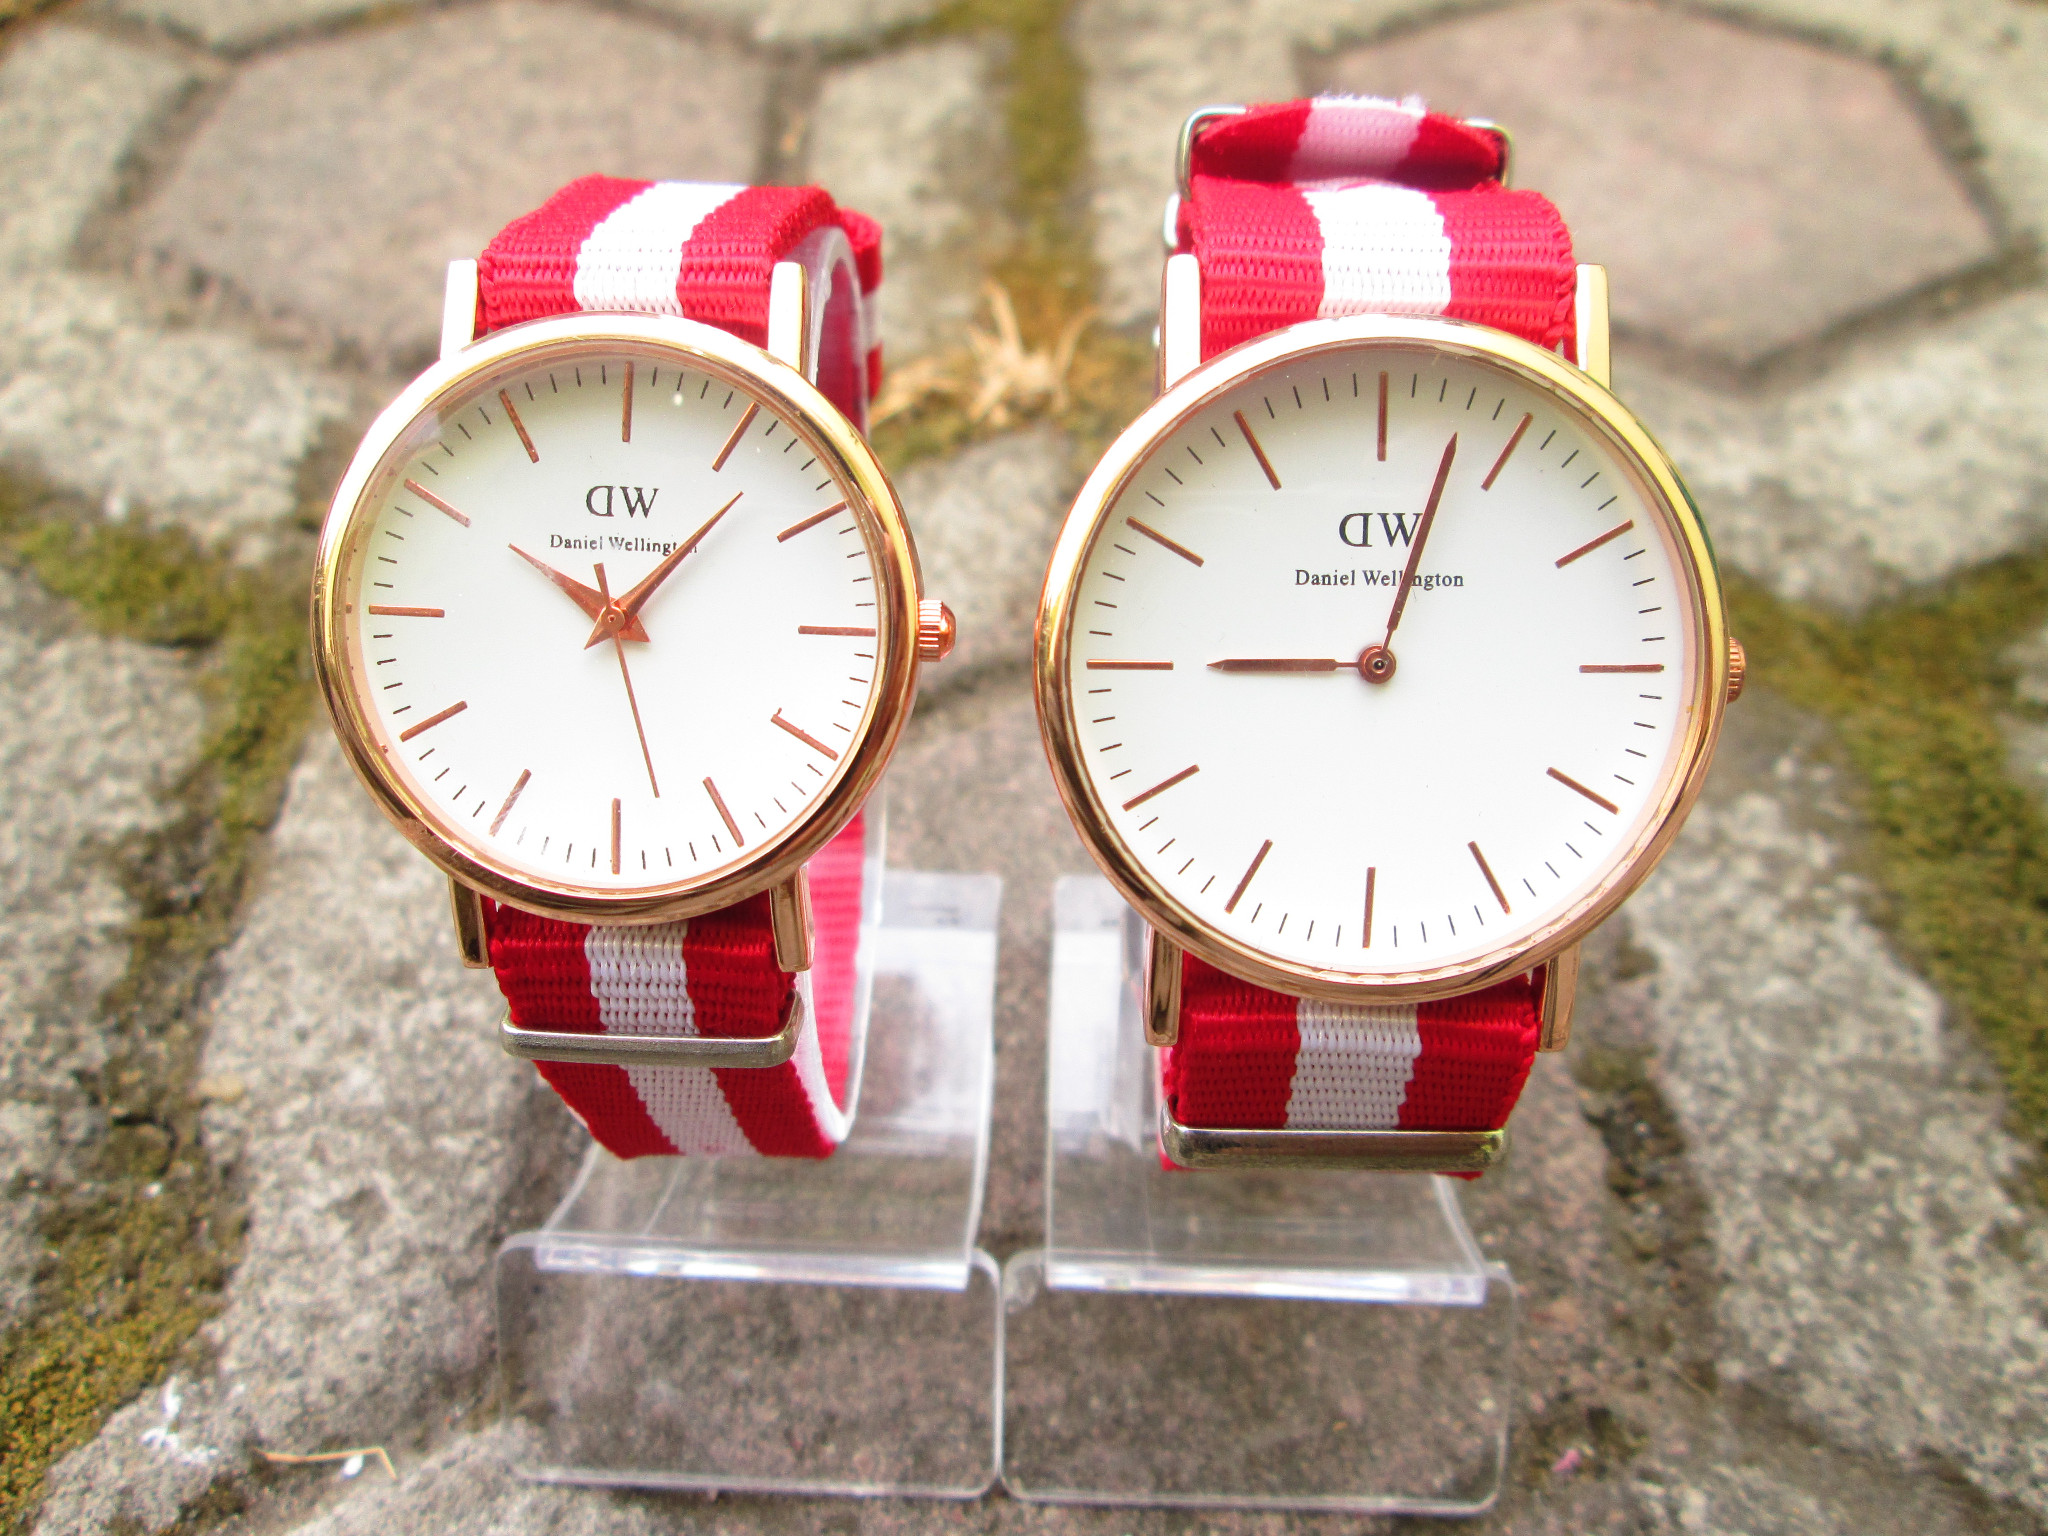 Jual DANIEL WELLINGTON 3 STRIP MERAH PUTIH MERAH Jam Couple DW Watch JamCoupleJKT .